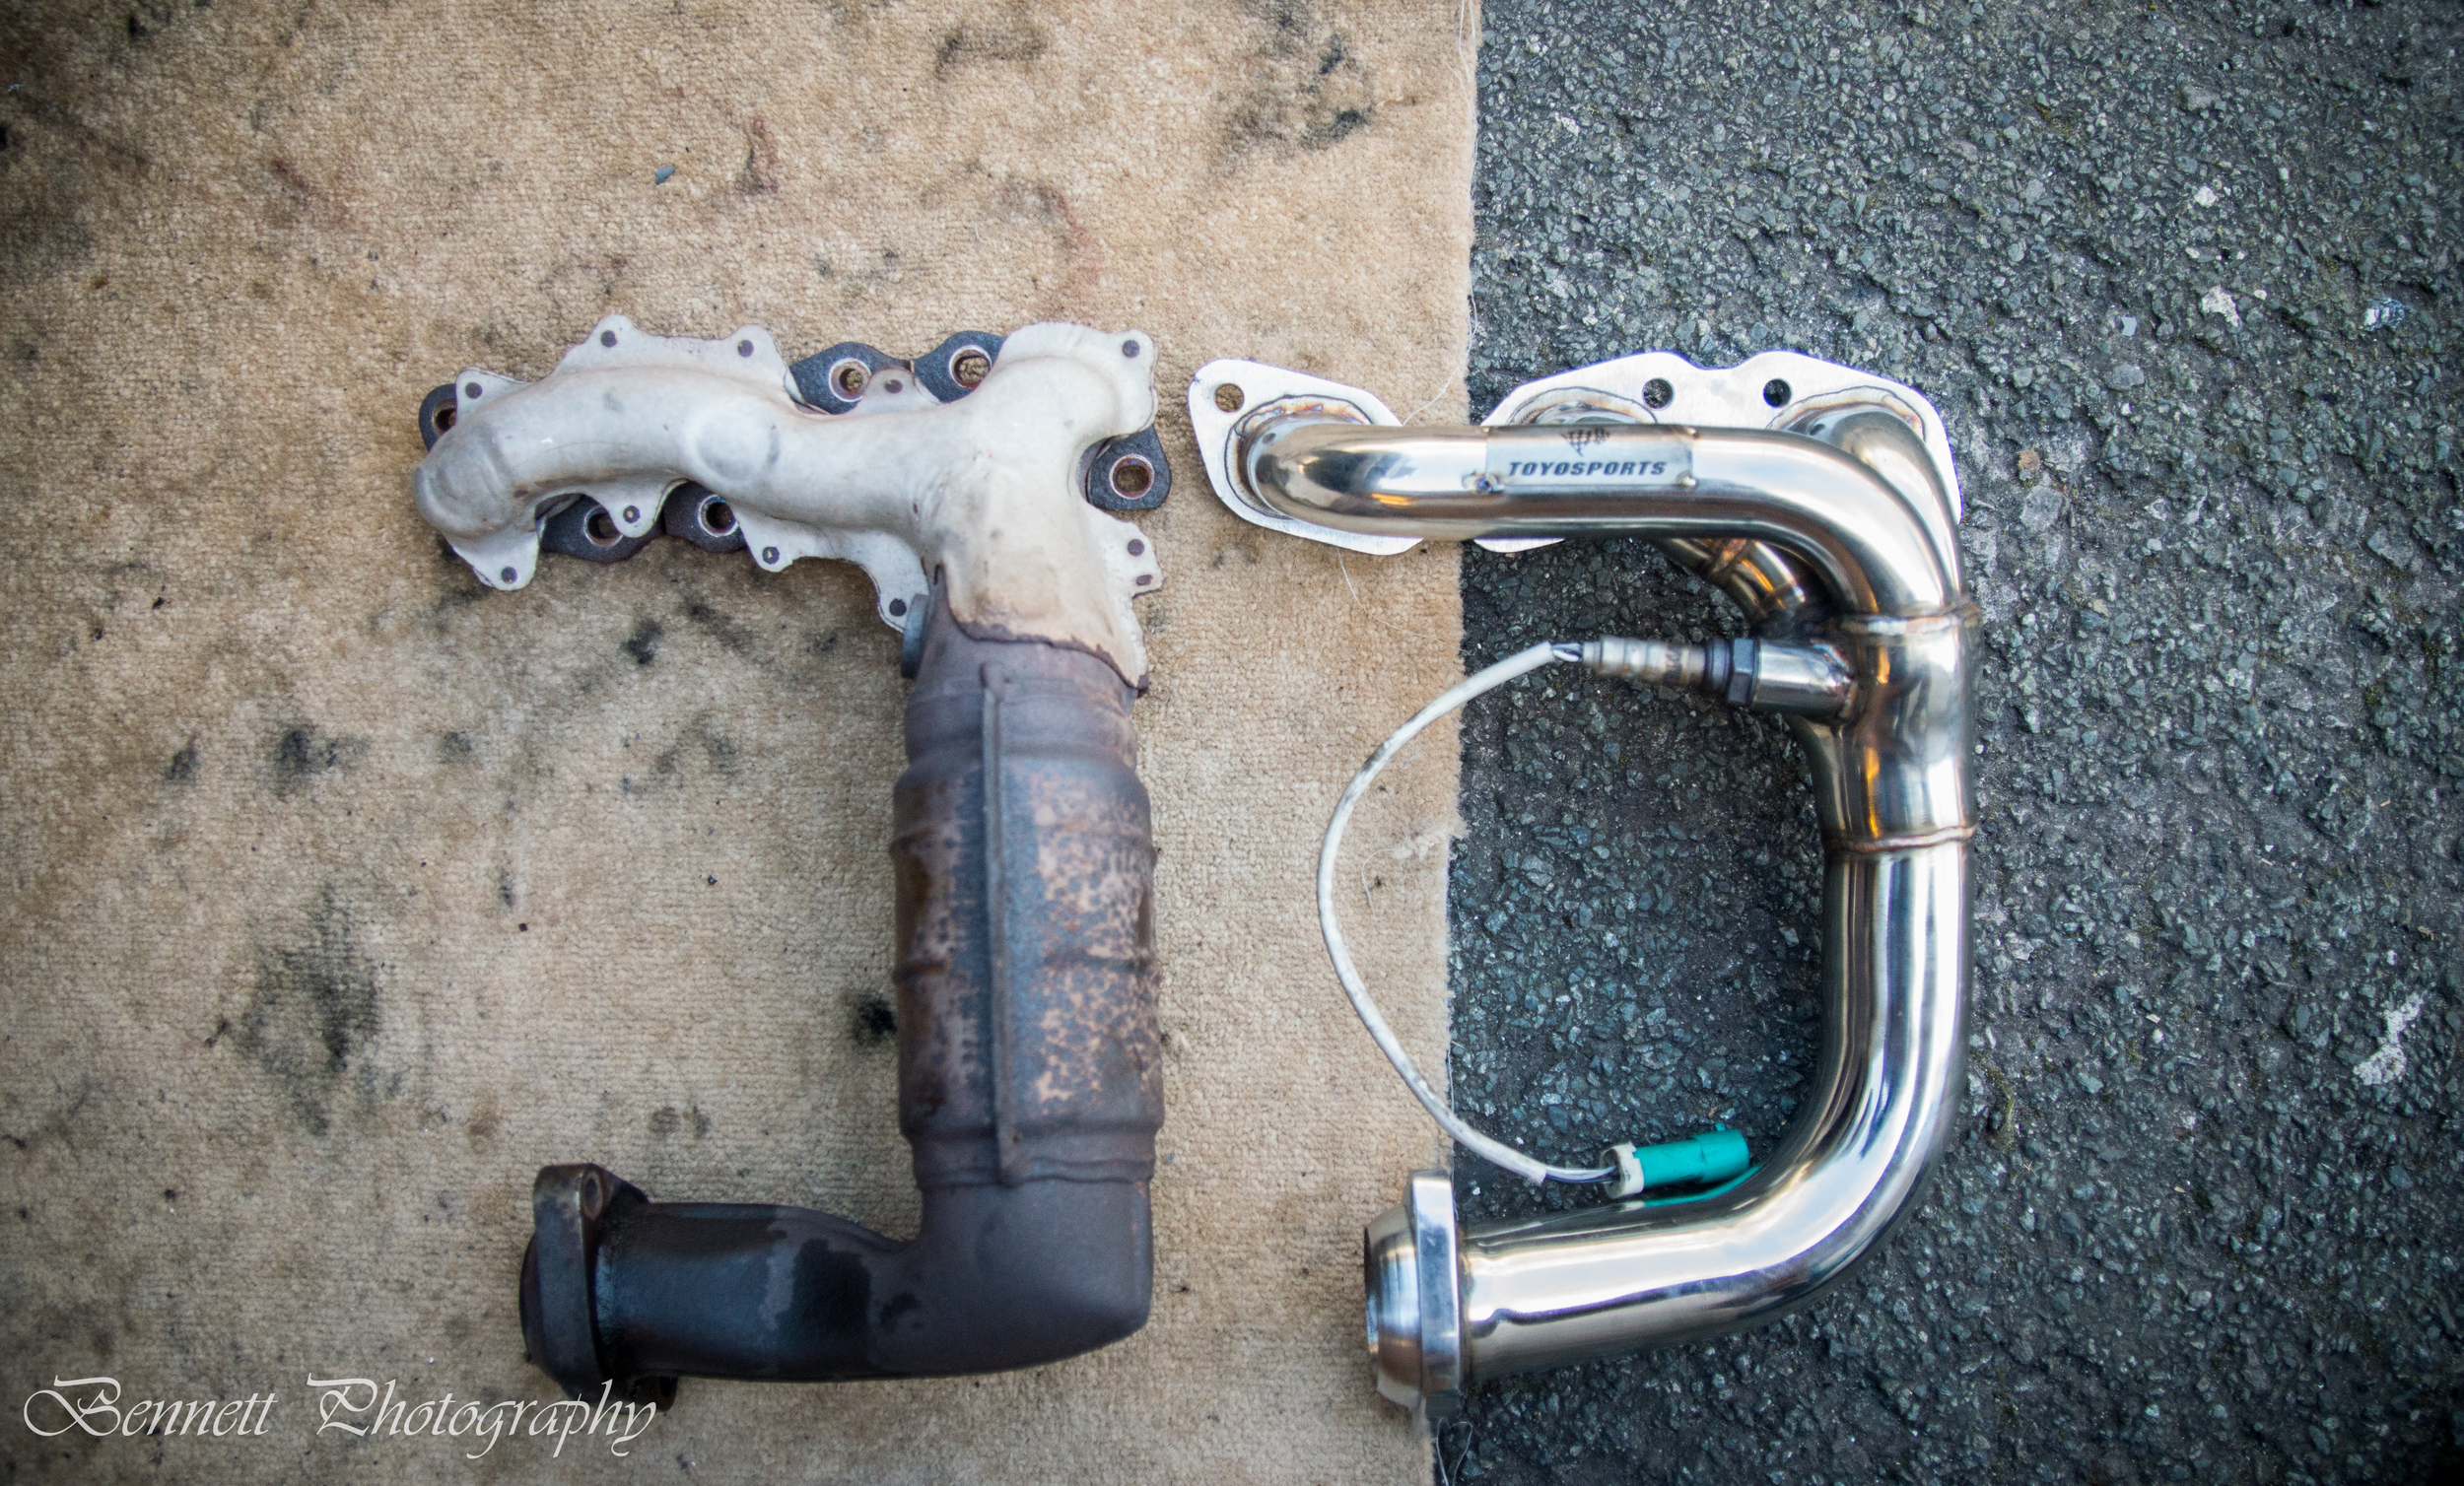 Comparison between the Standard manifold and pre cat, against the free flowing Toyosports 3 branch header